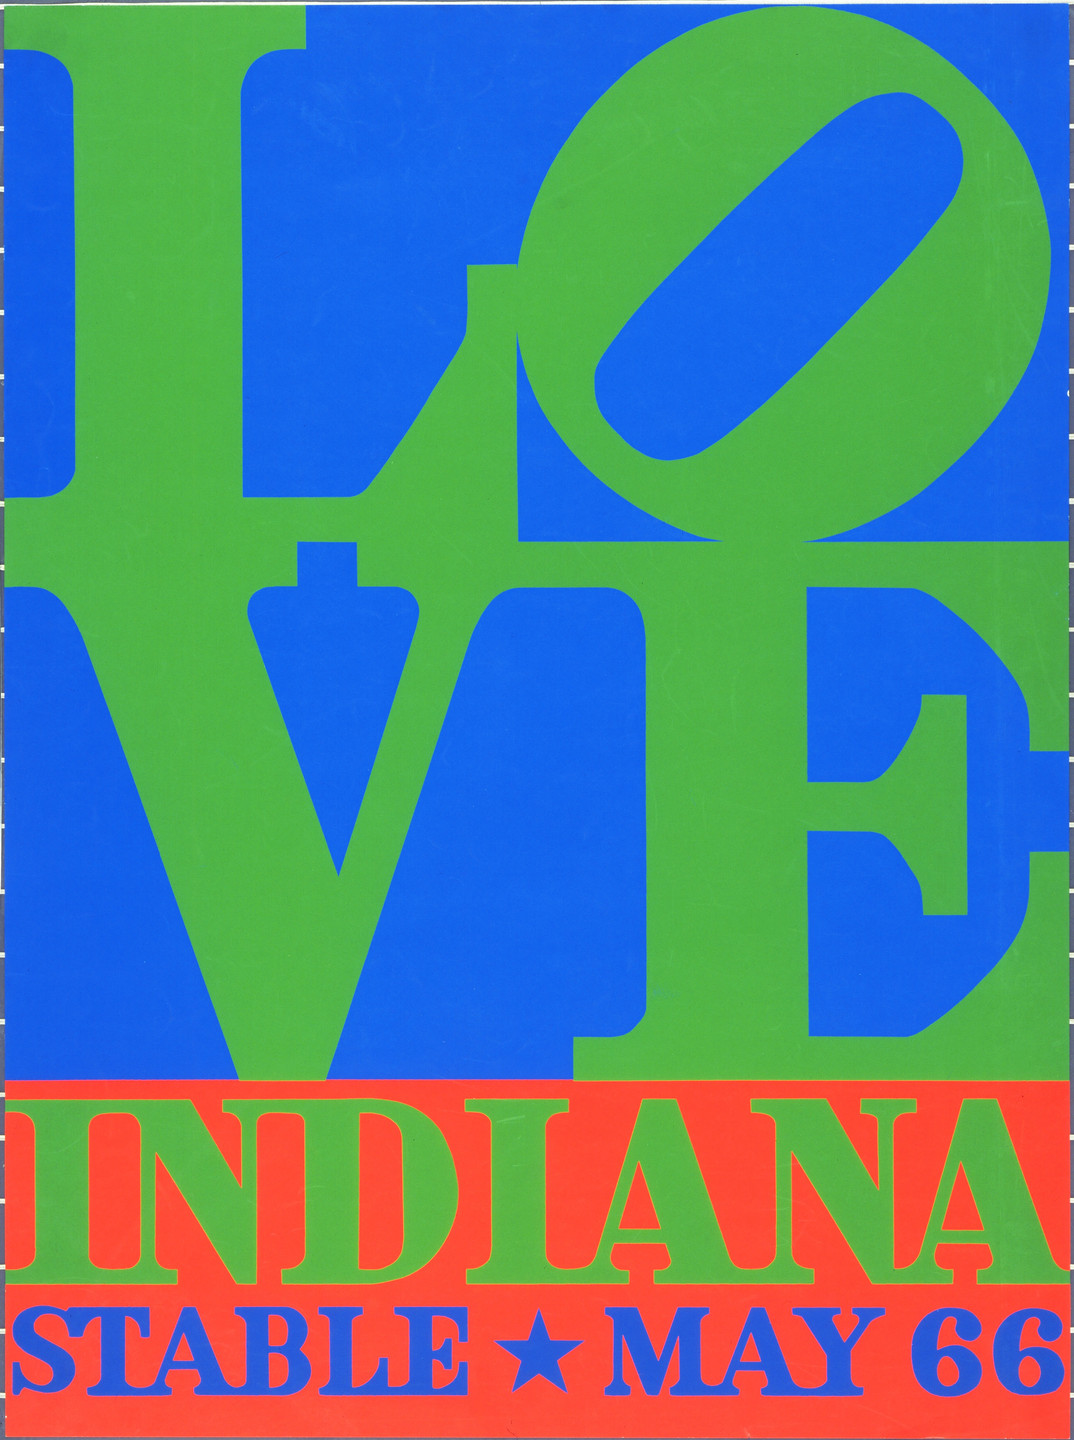 Robert Indiana. Love, Indiana Stable May 66. 1966